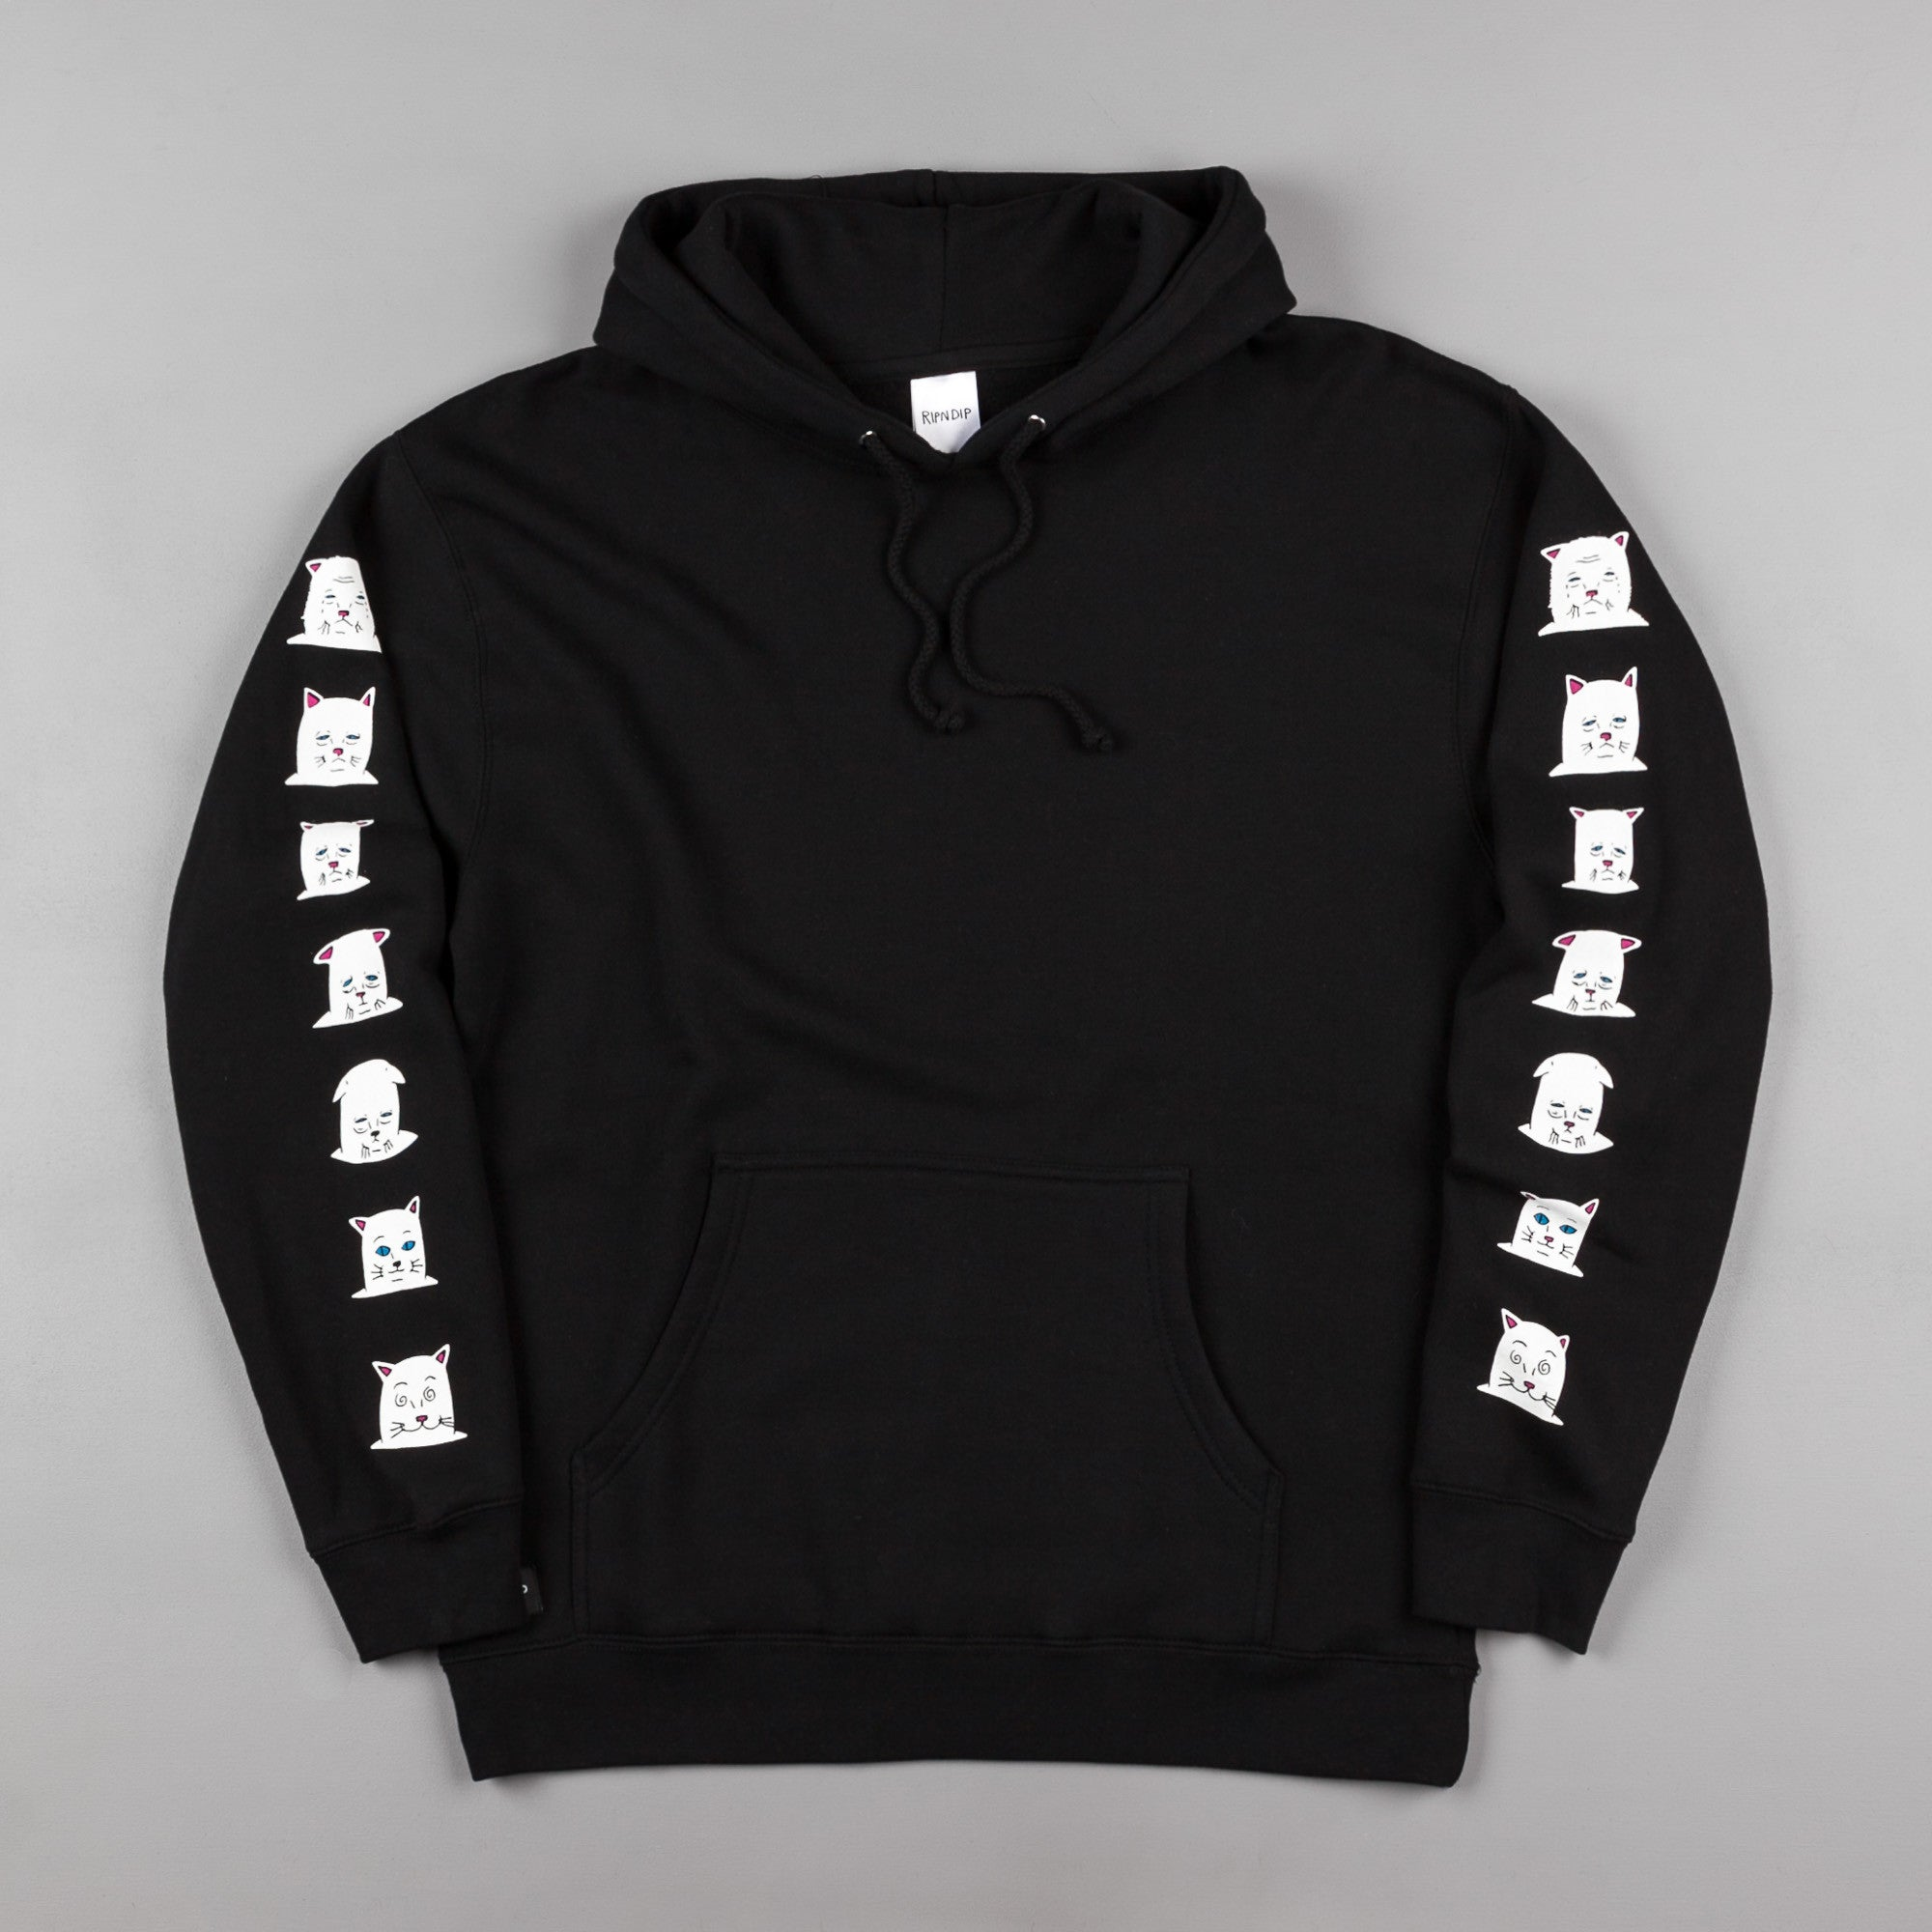 Rip N Dip Caturdays Hooded Sweatshirt - Black